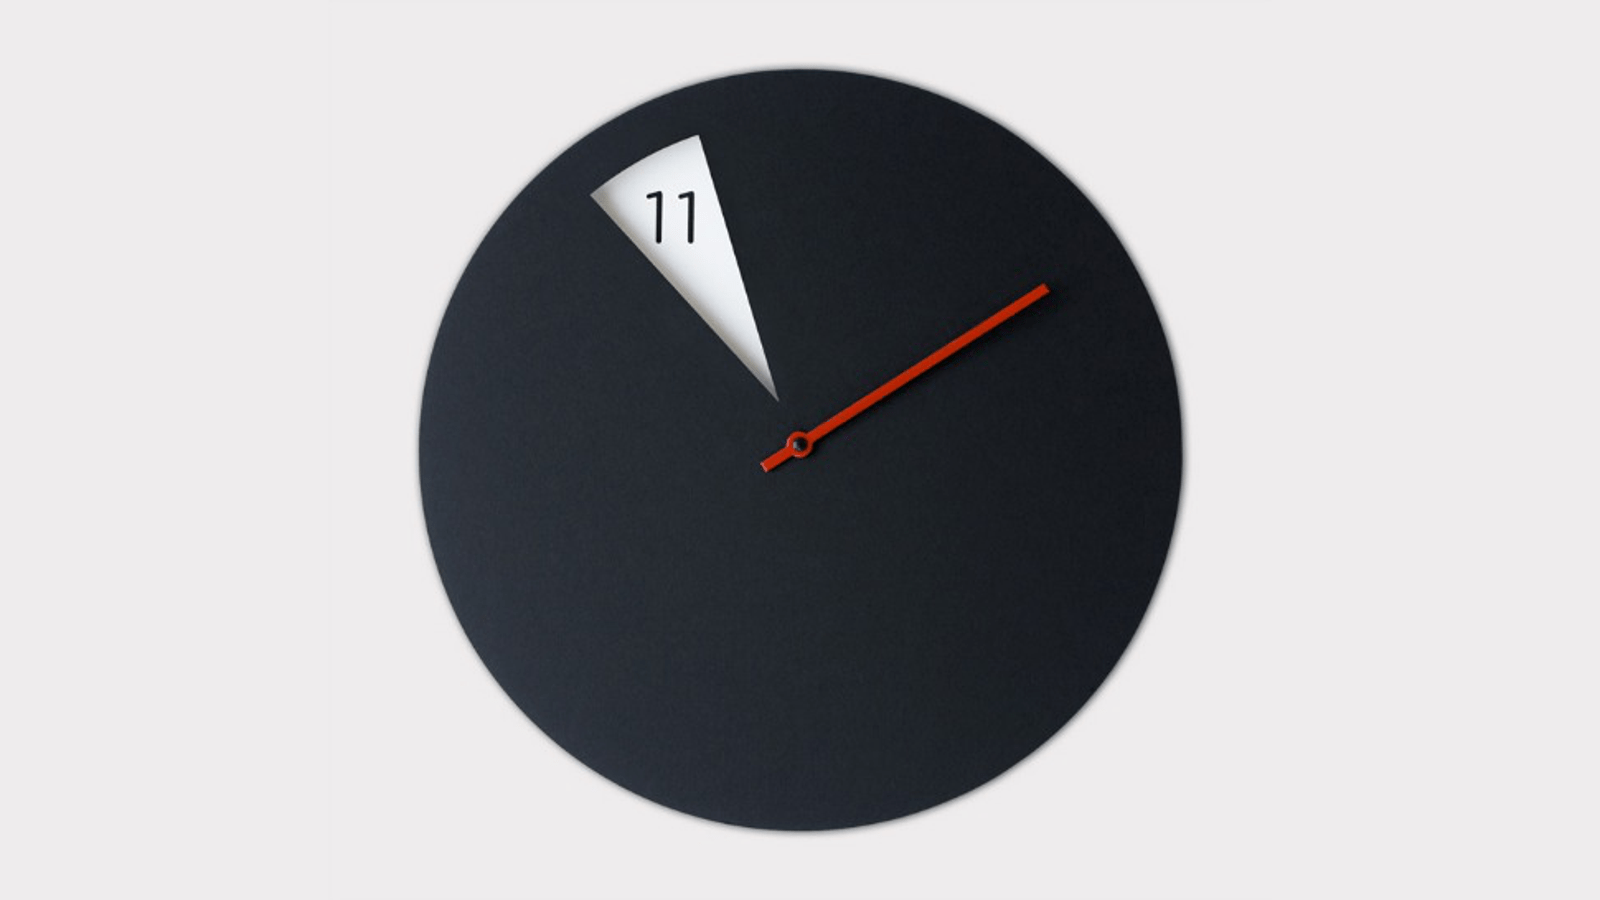 Pretty Digital Clock A Beautiful Analog Clock For Dummies Who Are Bad At